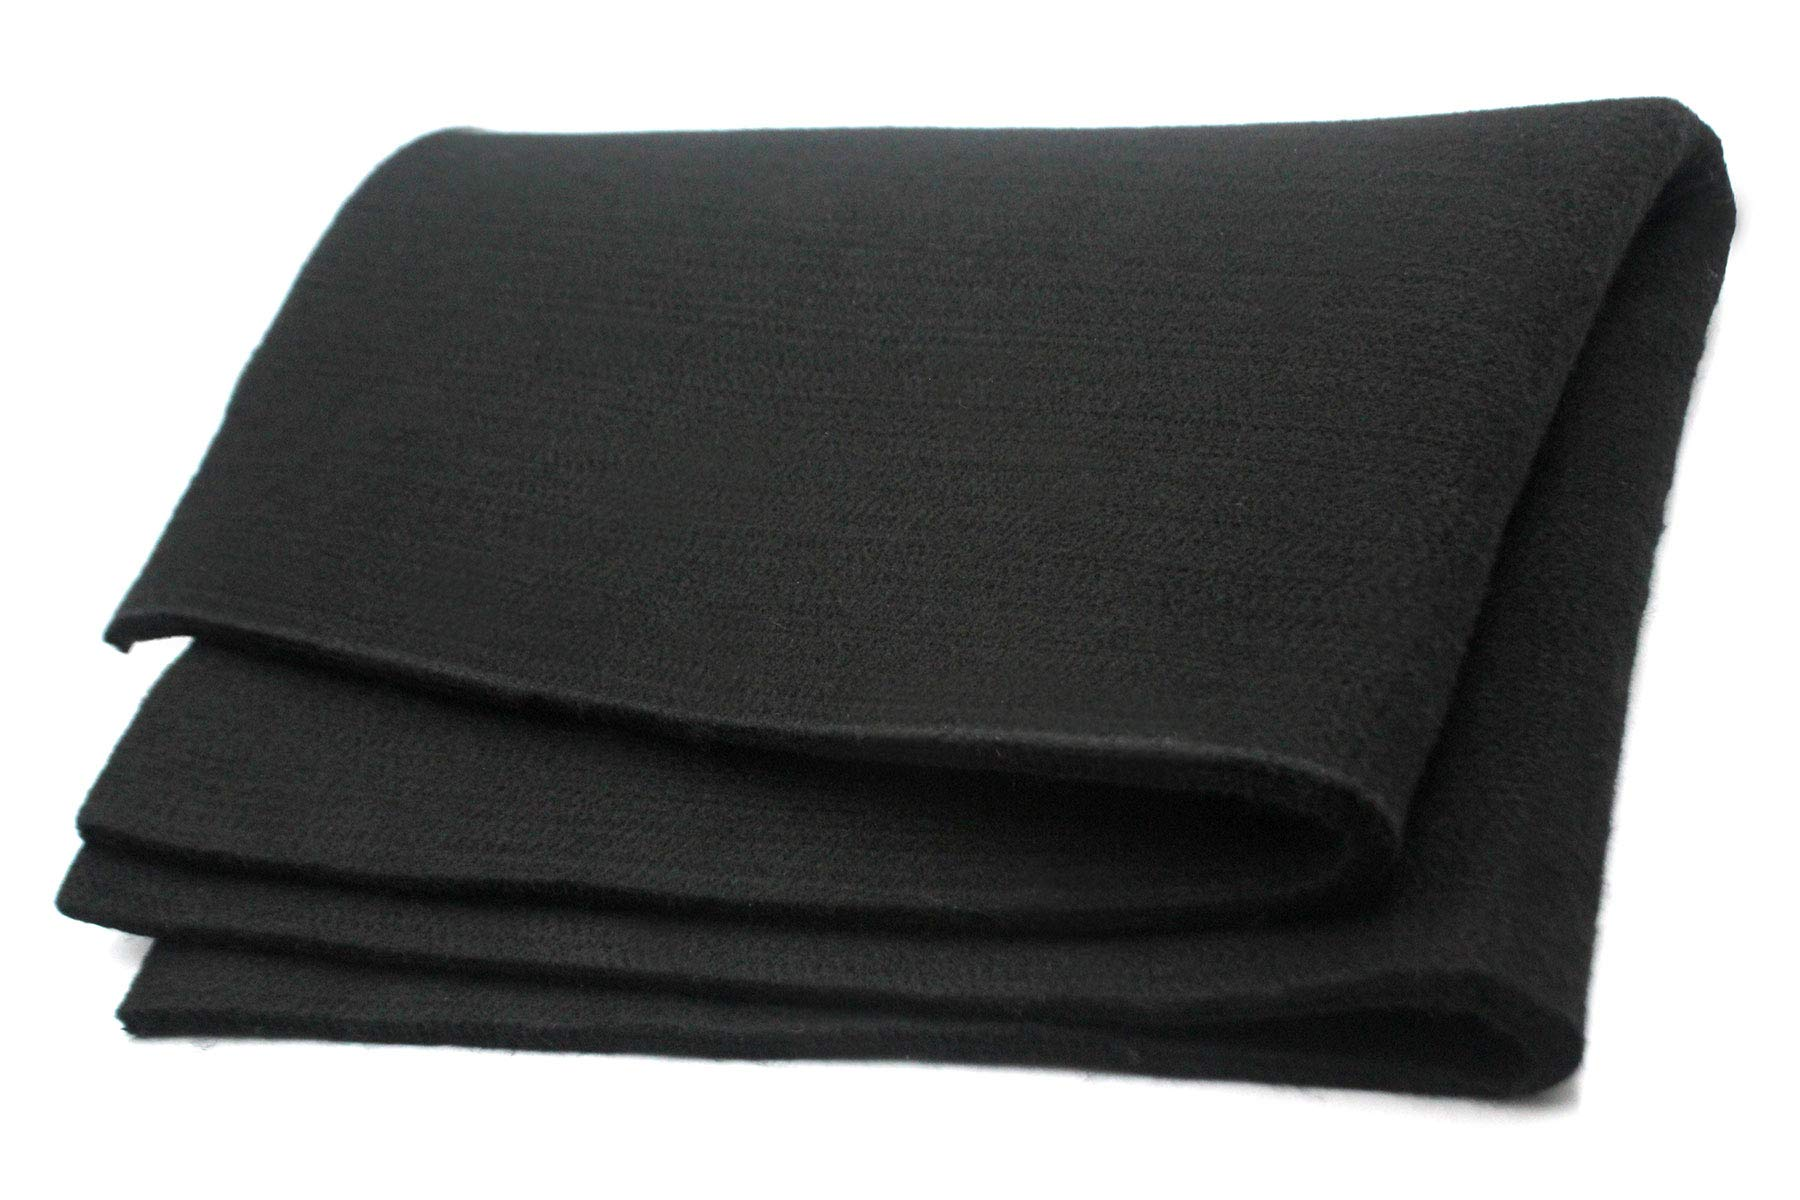 Welding Blanket Felt Carbon Fiber Fire Blanket Protect Work Area from Sparks Black (24 x 18 x 0.24inches)